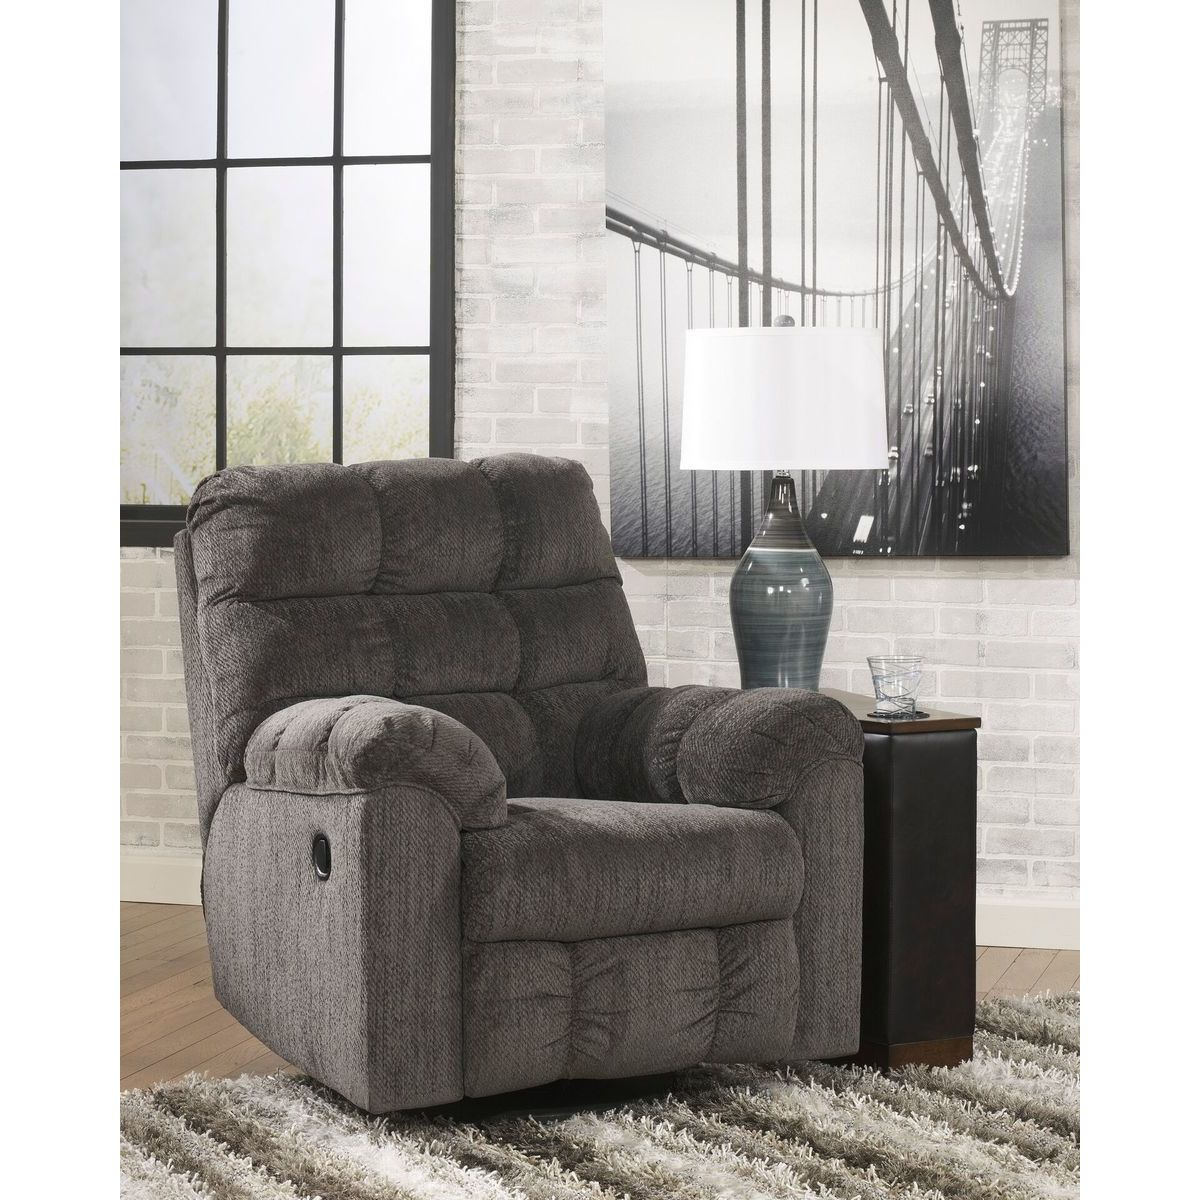 Acieona Swivel Rocker Recliner